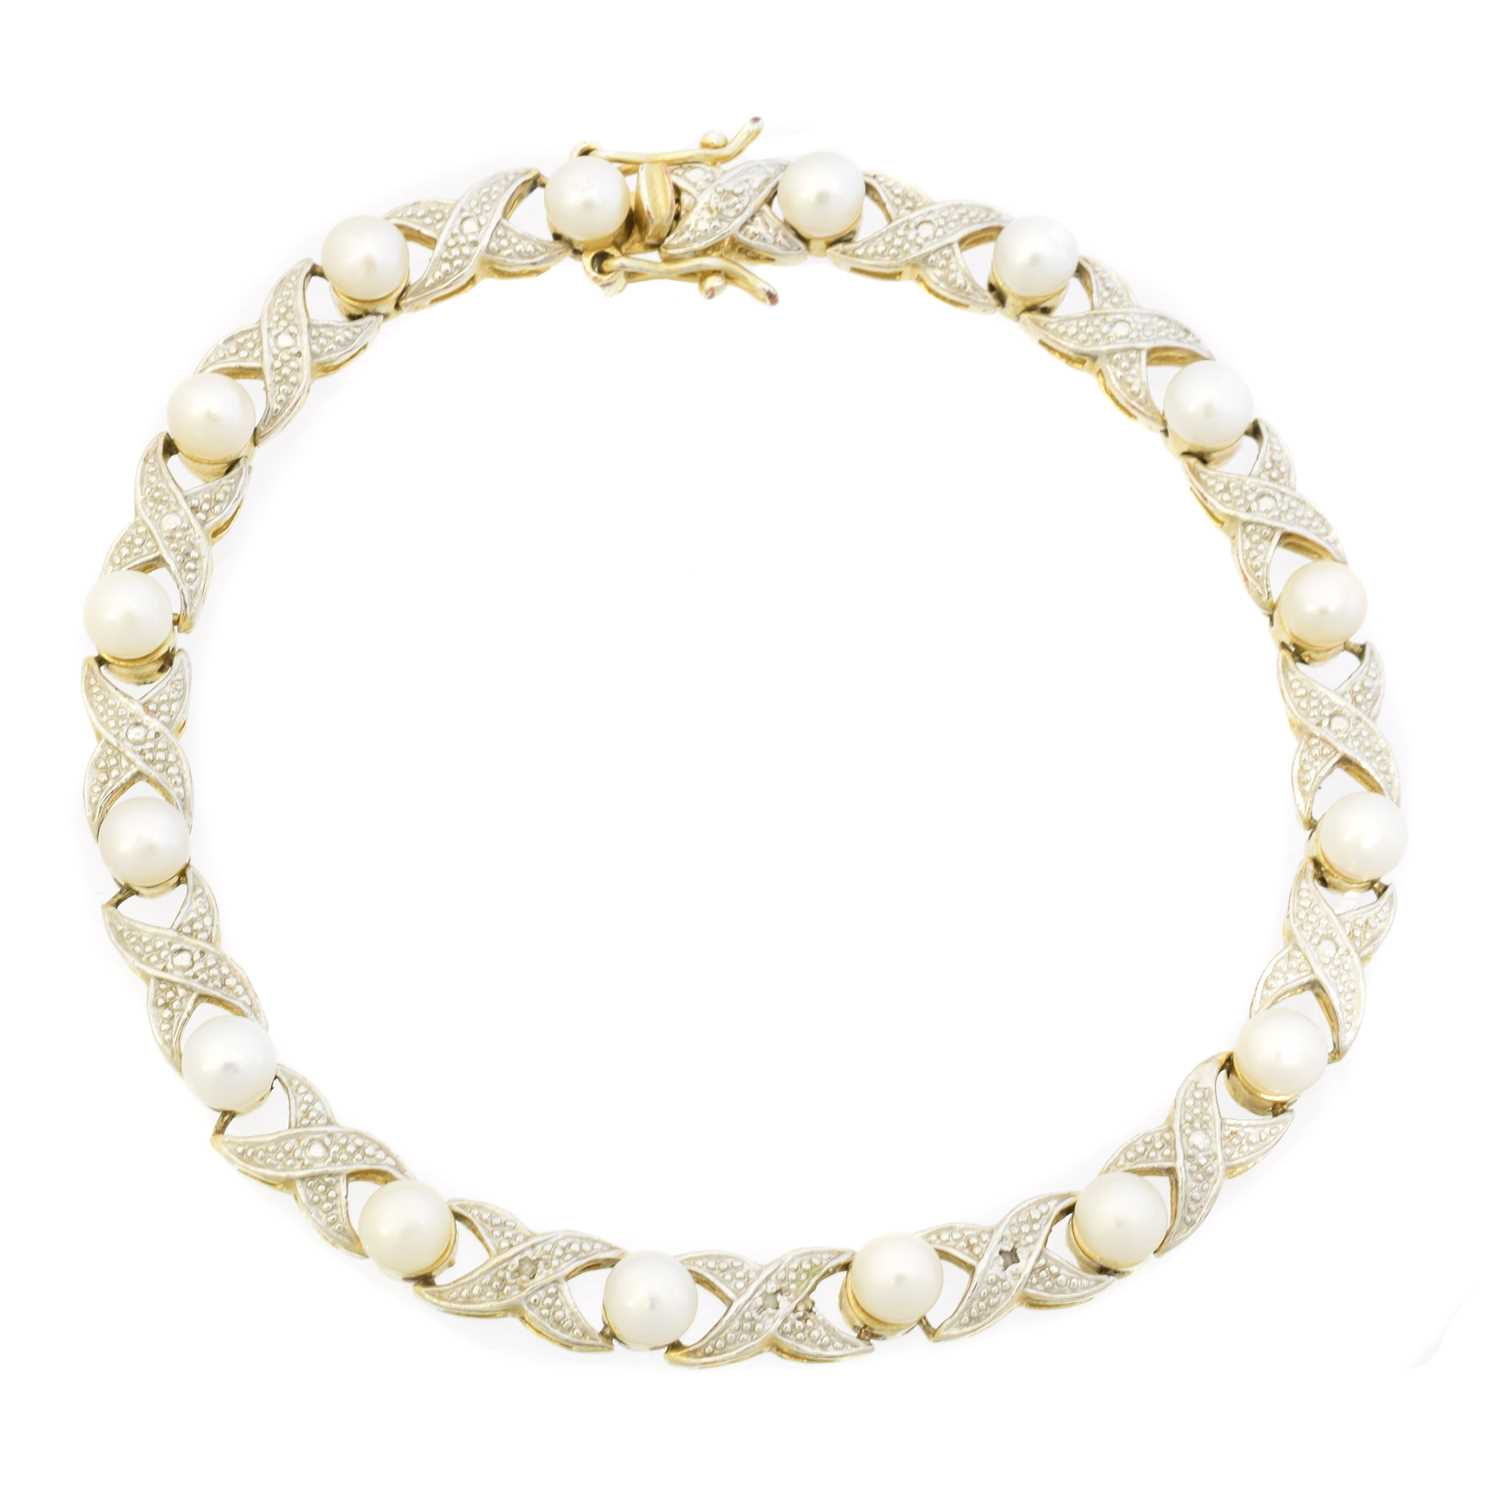 A cultured pearl and diamond bracelet,